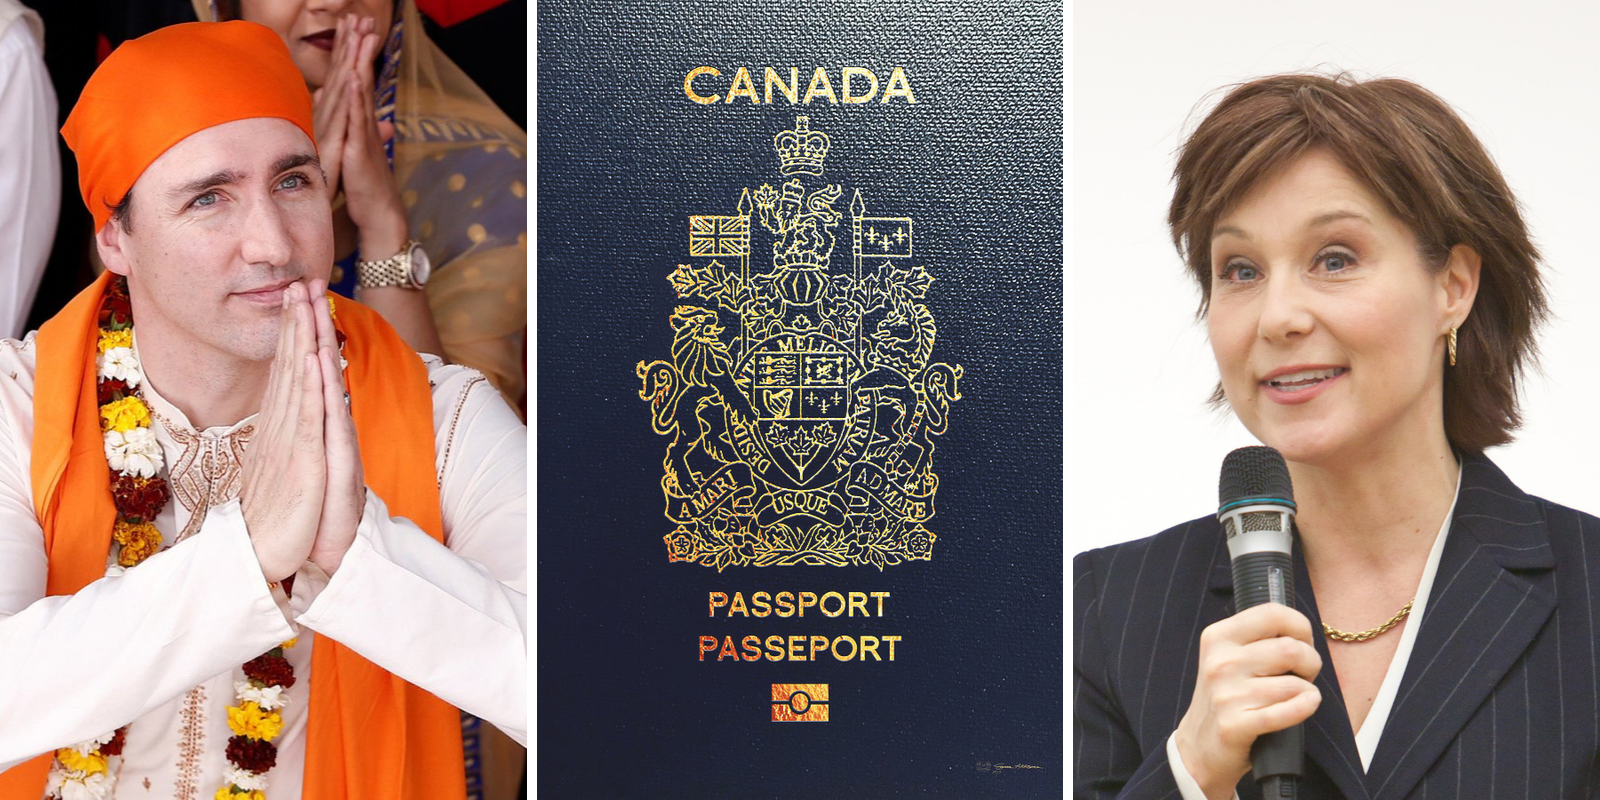 Former B.C. Liberal Premier says Trudeau should have passport taken away—is she right?